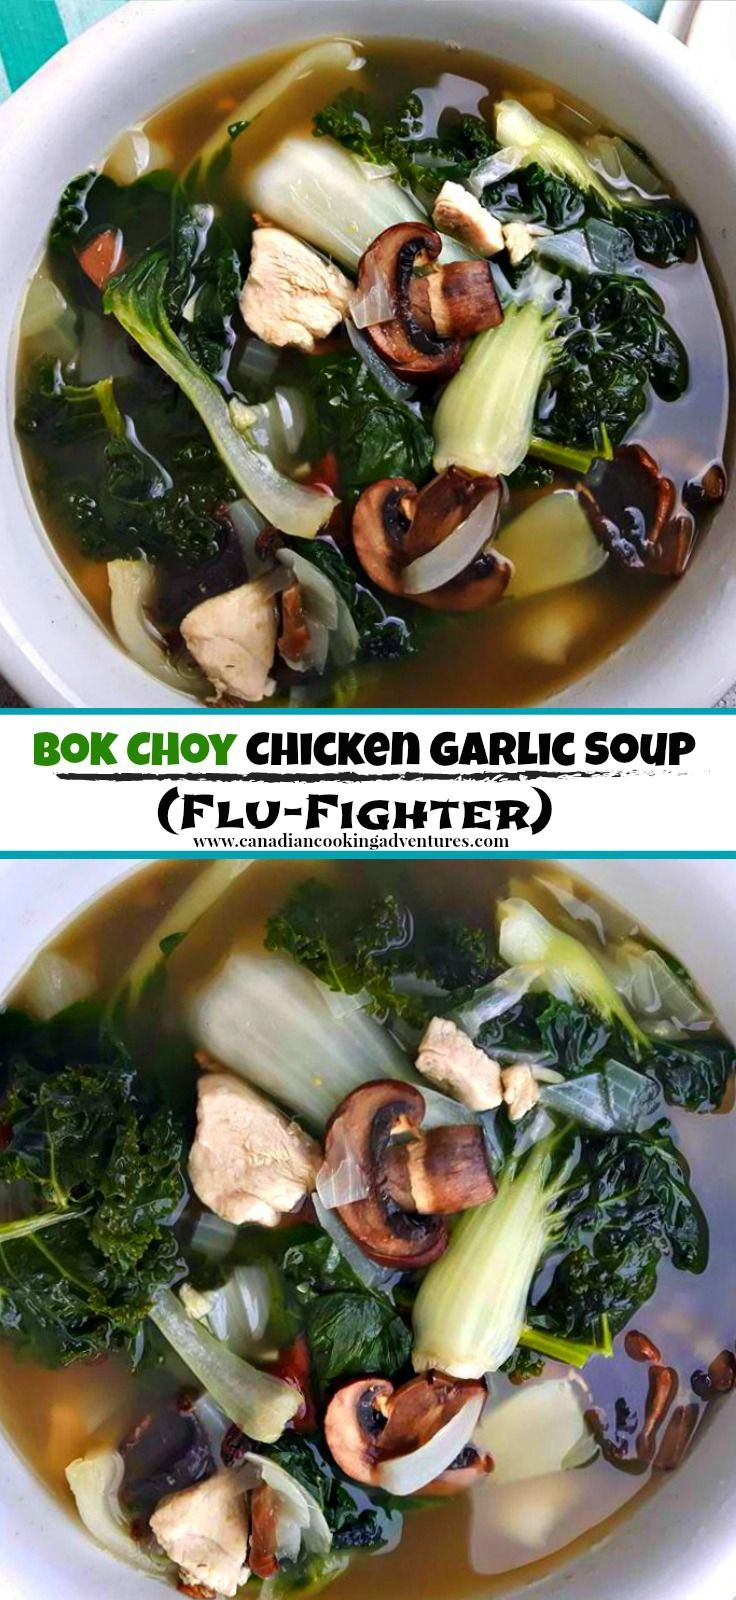 Untitled-6-2 Bok Choy Chicken Garlic (Flu-Fighter) Soup